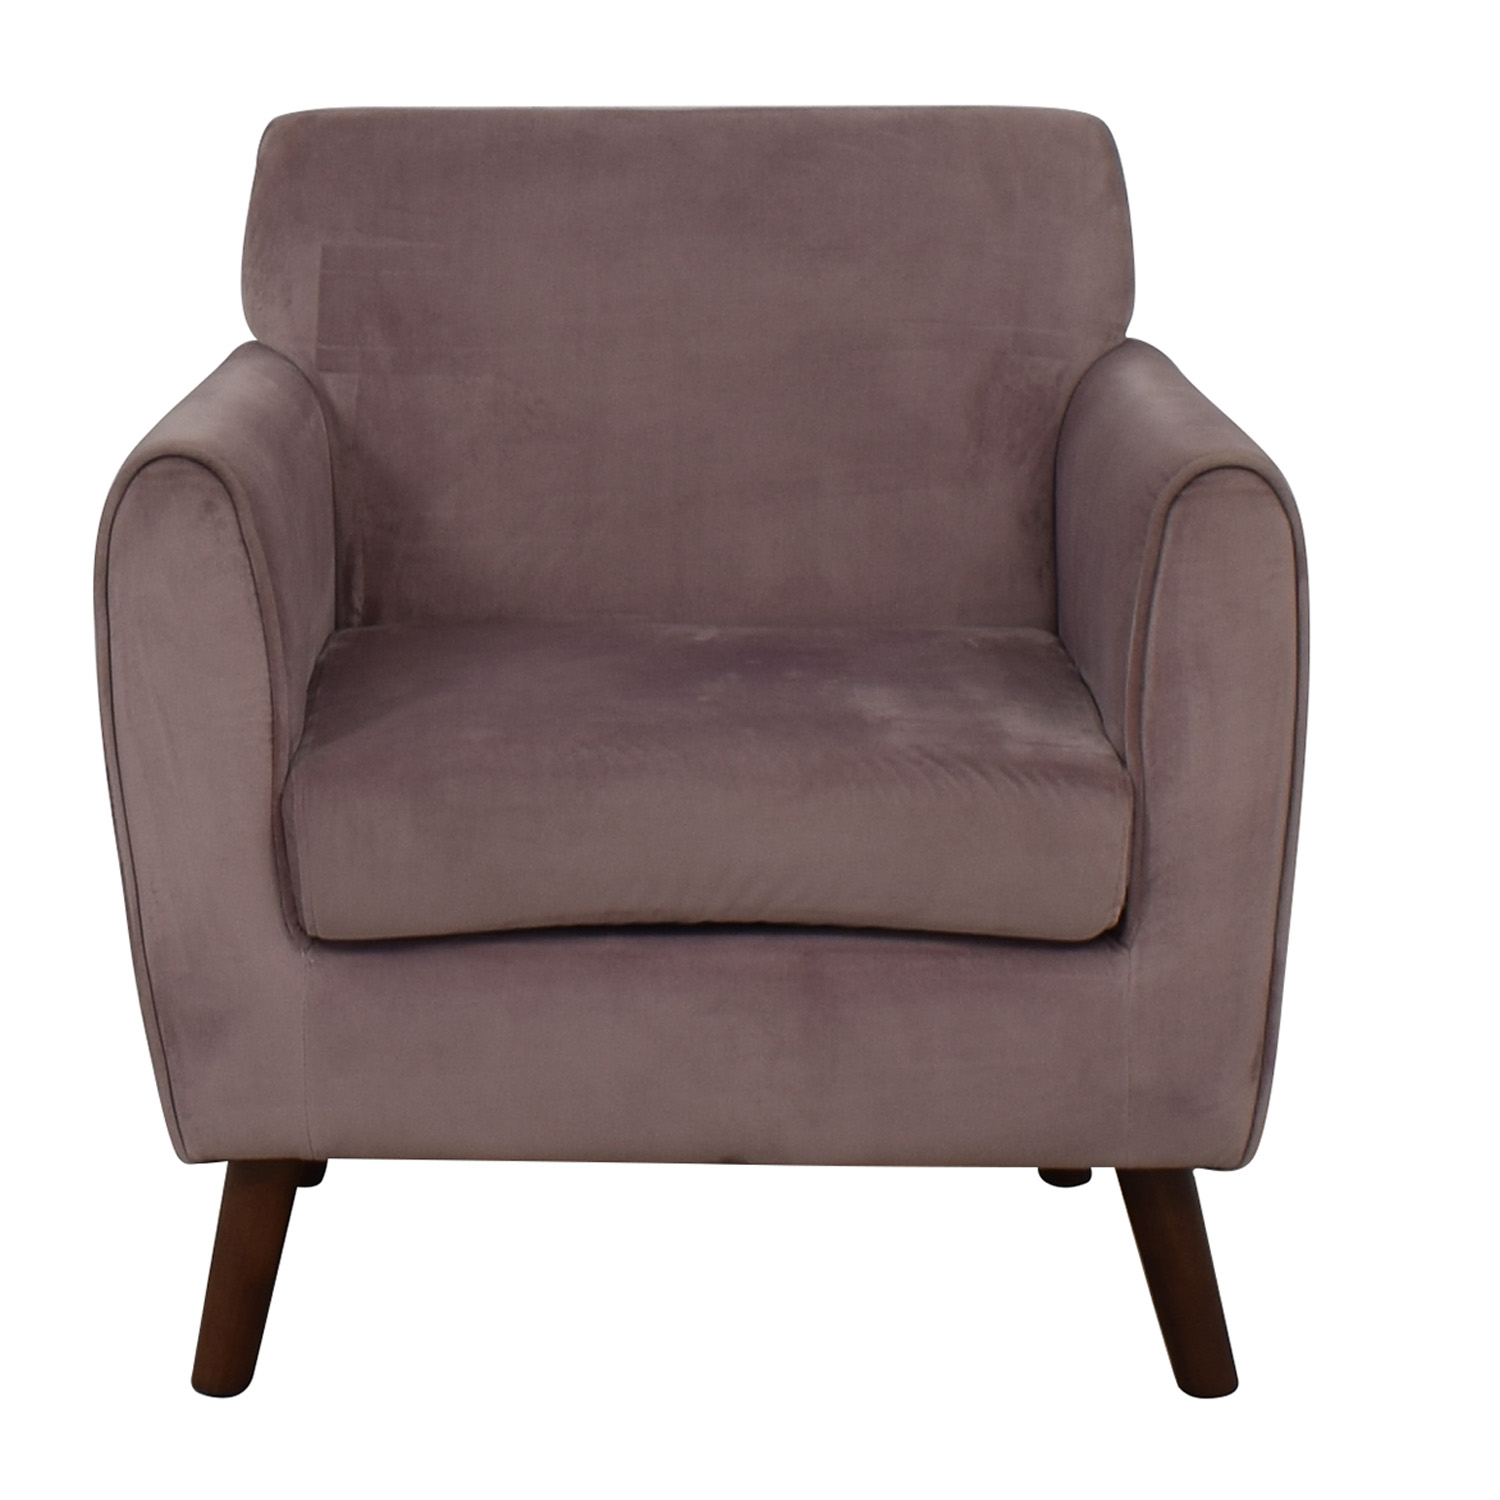 Purple Accent Chair 71 Off Brylane Home Brylane Home Purple Accent Chair Chairs